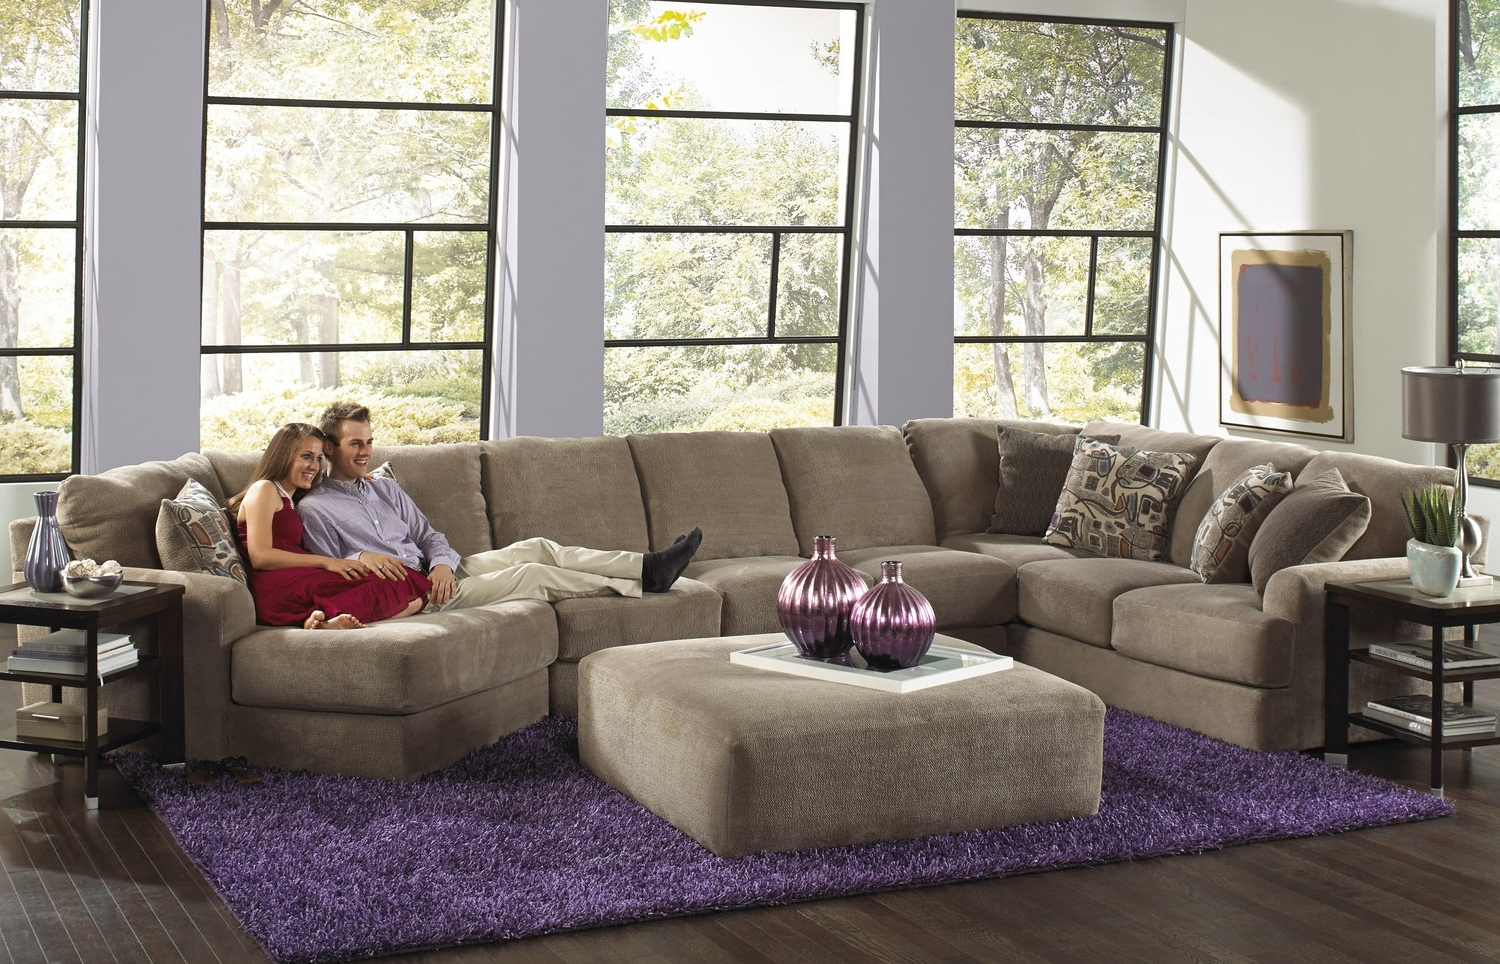 Most Recent 110X110 Sectional Sofas With Furniture : Sectional Sofa 110 X 110 Corner Couch Ideas Sectional (View 13 of 20)